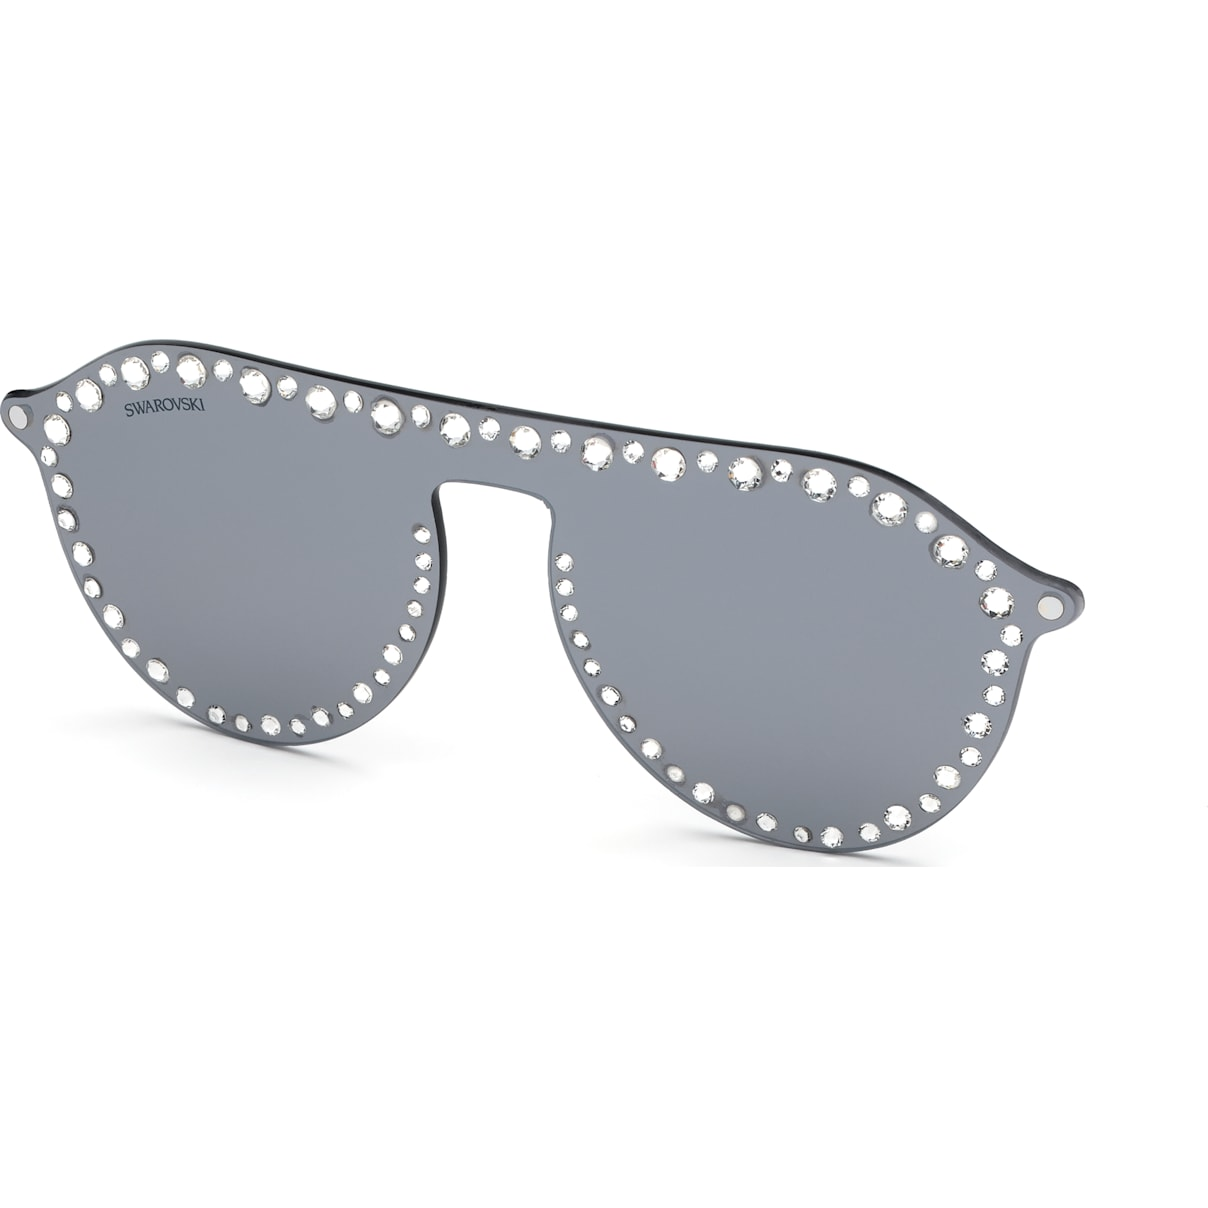 Swarovski Swarovski Click-on Mask for Sunglasses, SK5329-CL 16C, Gray